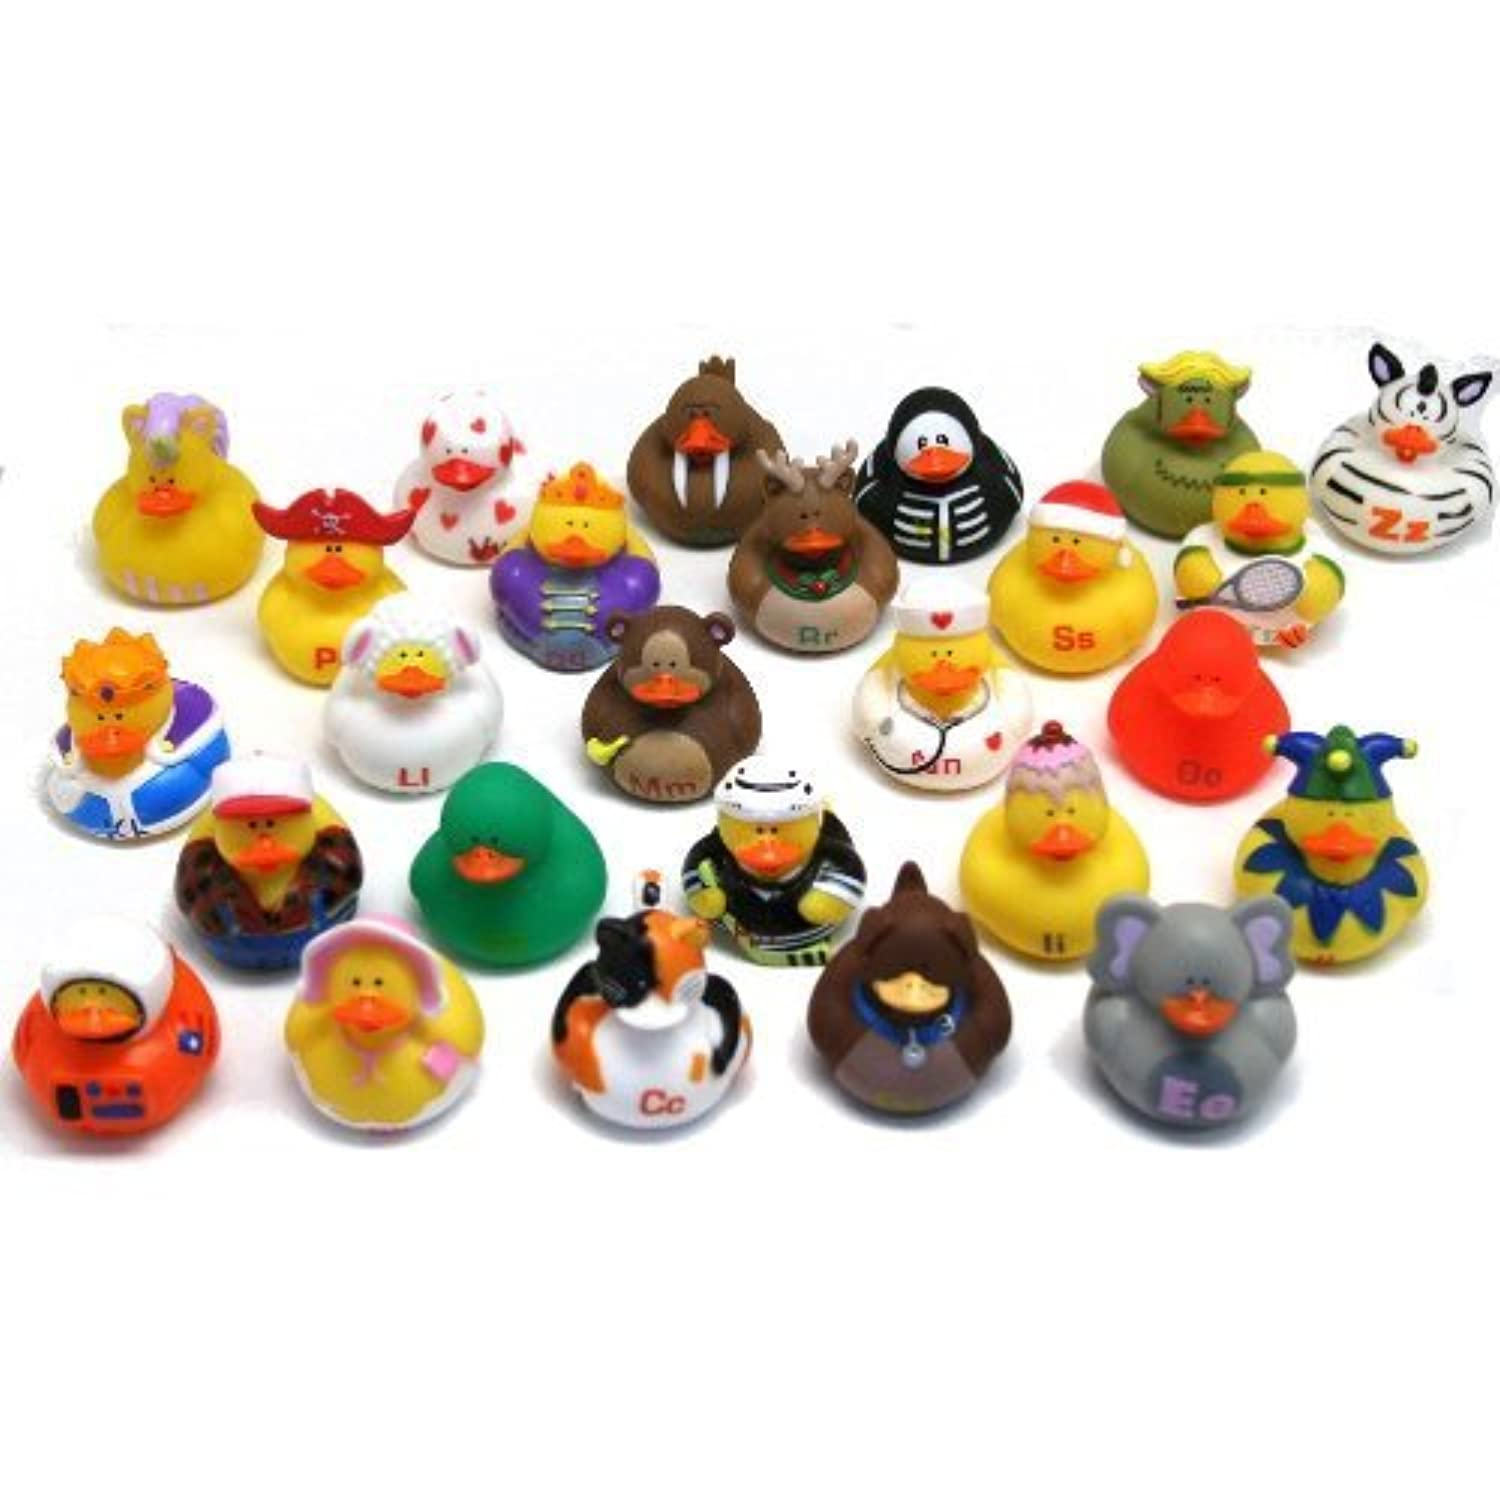 ABC'S Rubber Duckies (26 PIECES) [並行輸入品]